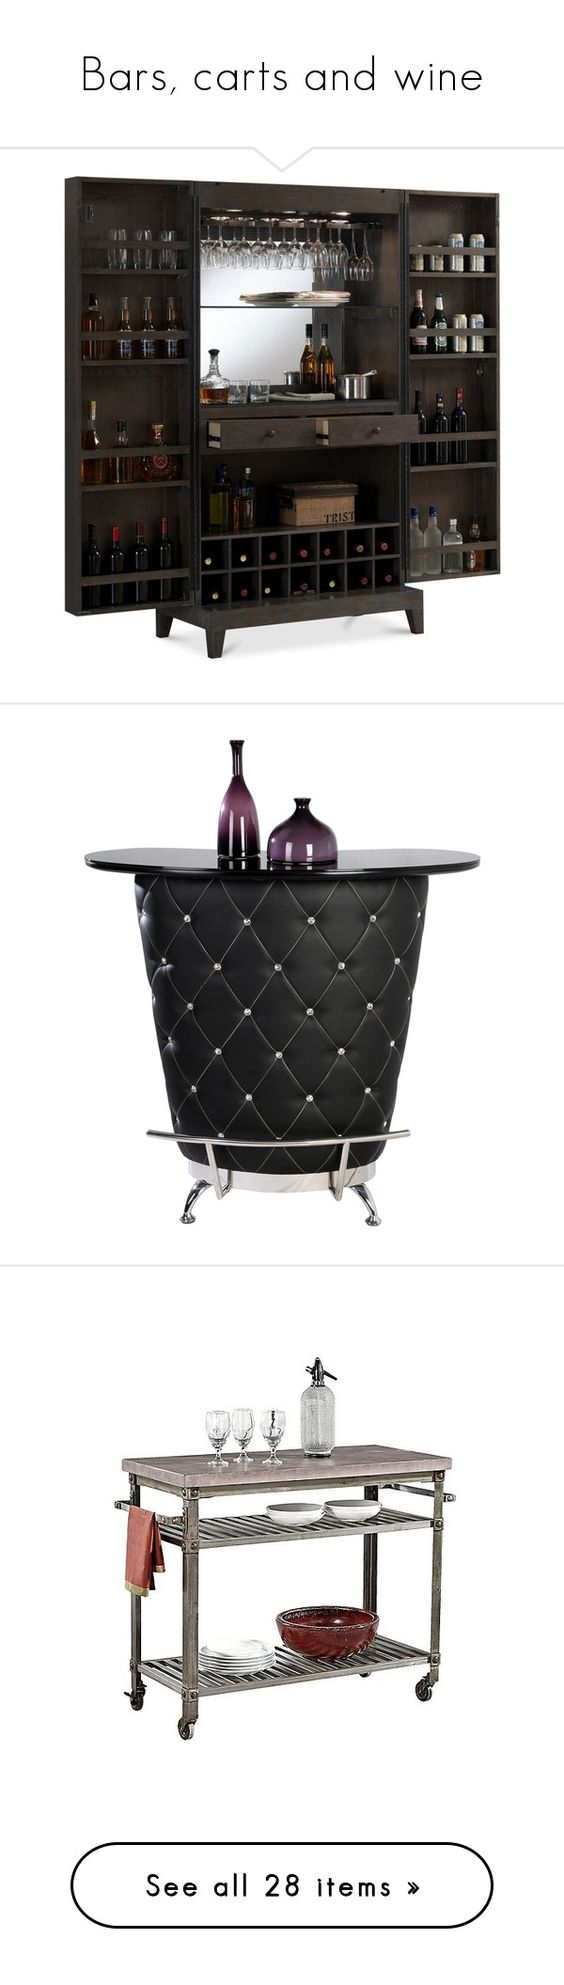 Wine Carts Cabinets Bars Carts And Wine By Amazing Yessi On Polyvore Featuring Home